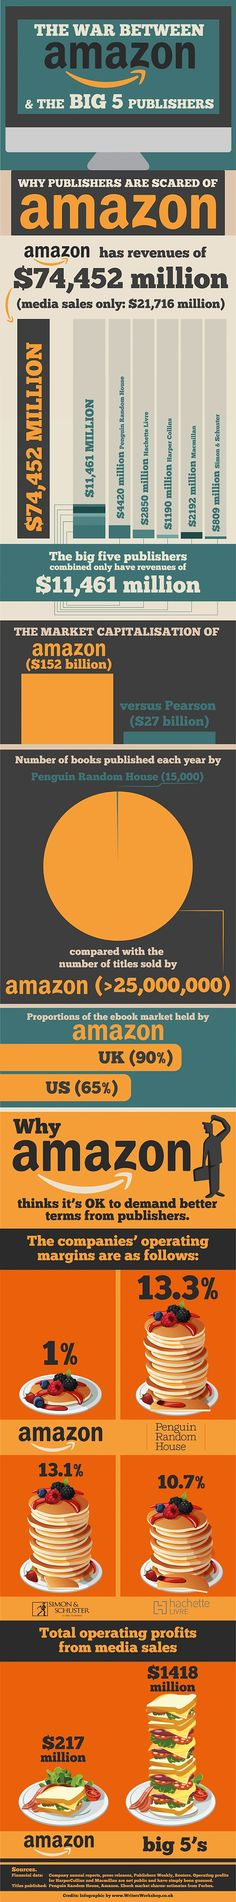 The war between Amazon & the big 5 publishers #infographic